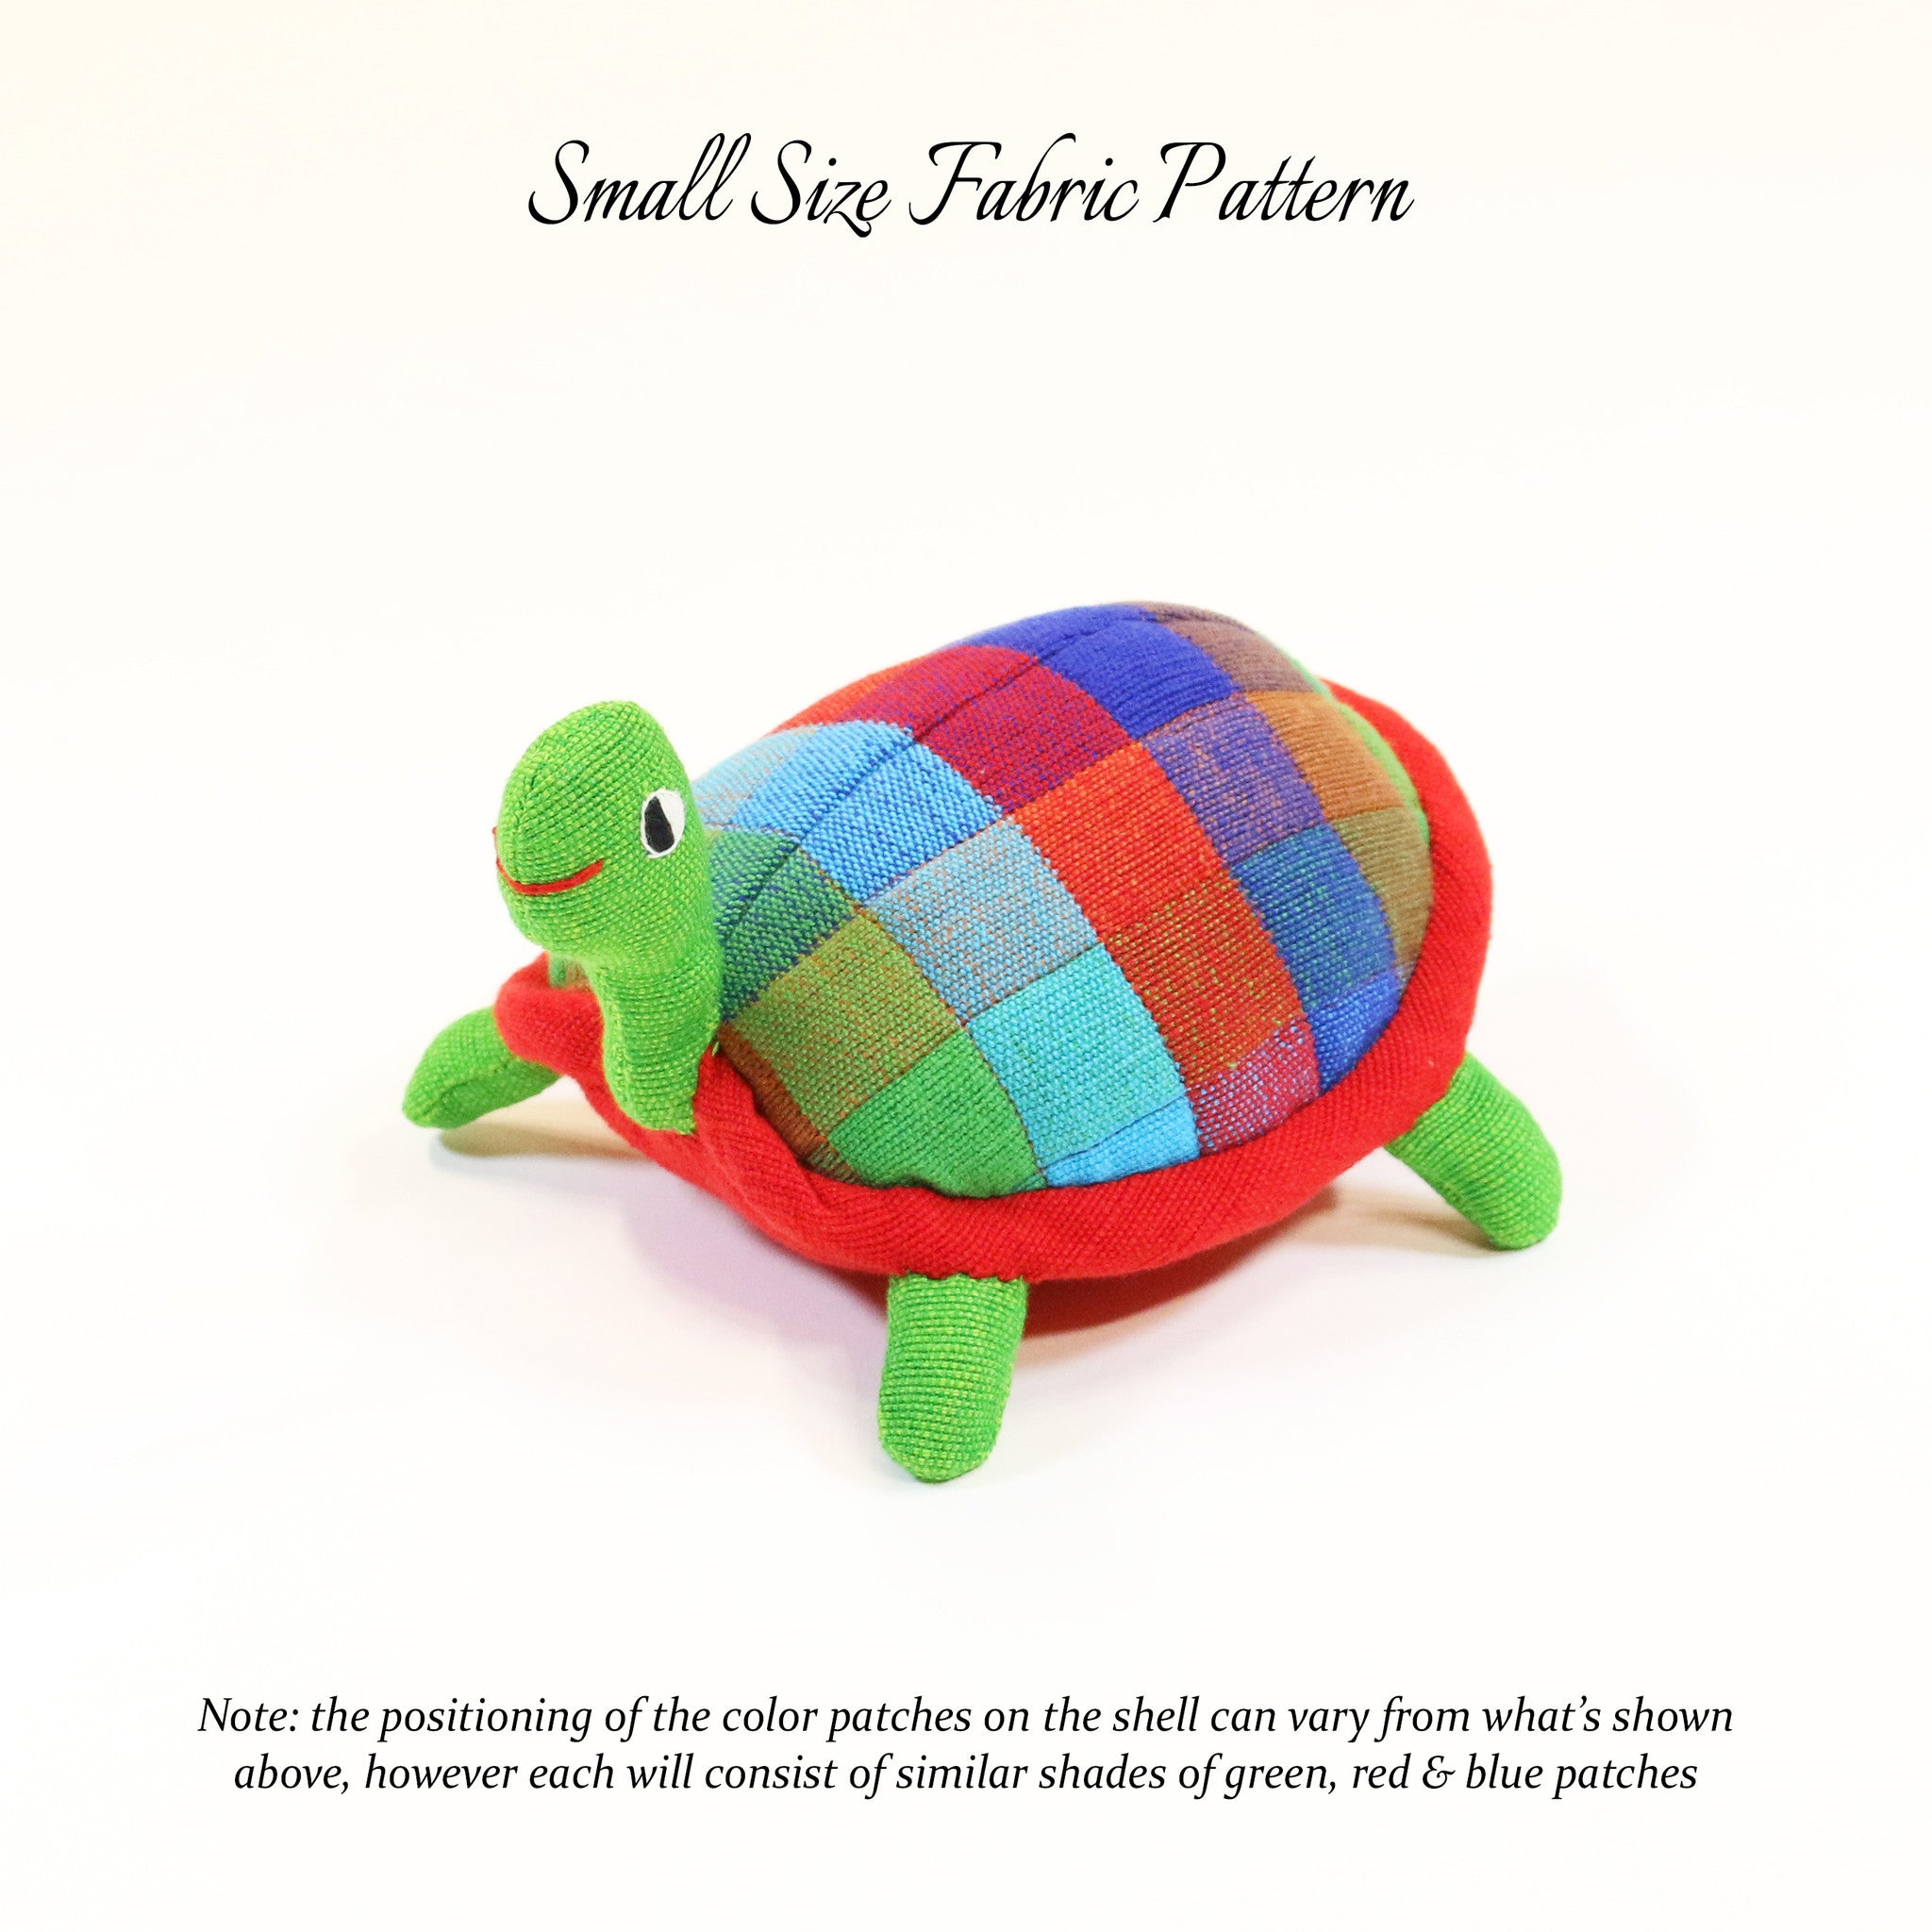 Terry, the Turtle – small size fabric pattern shown